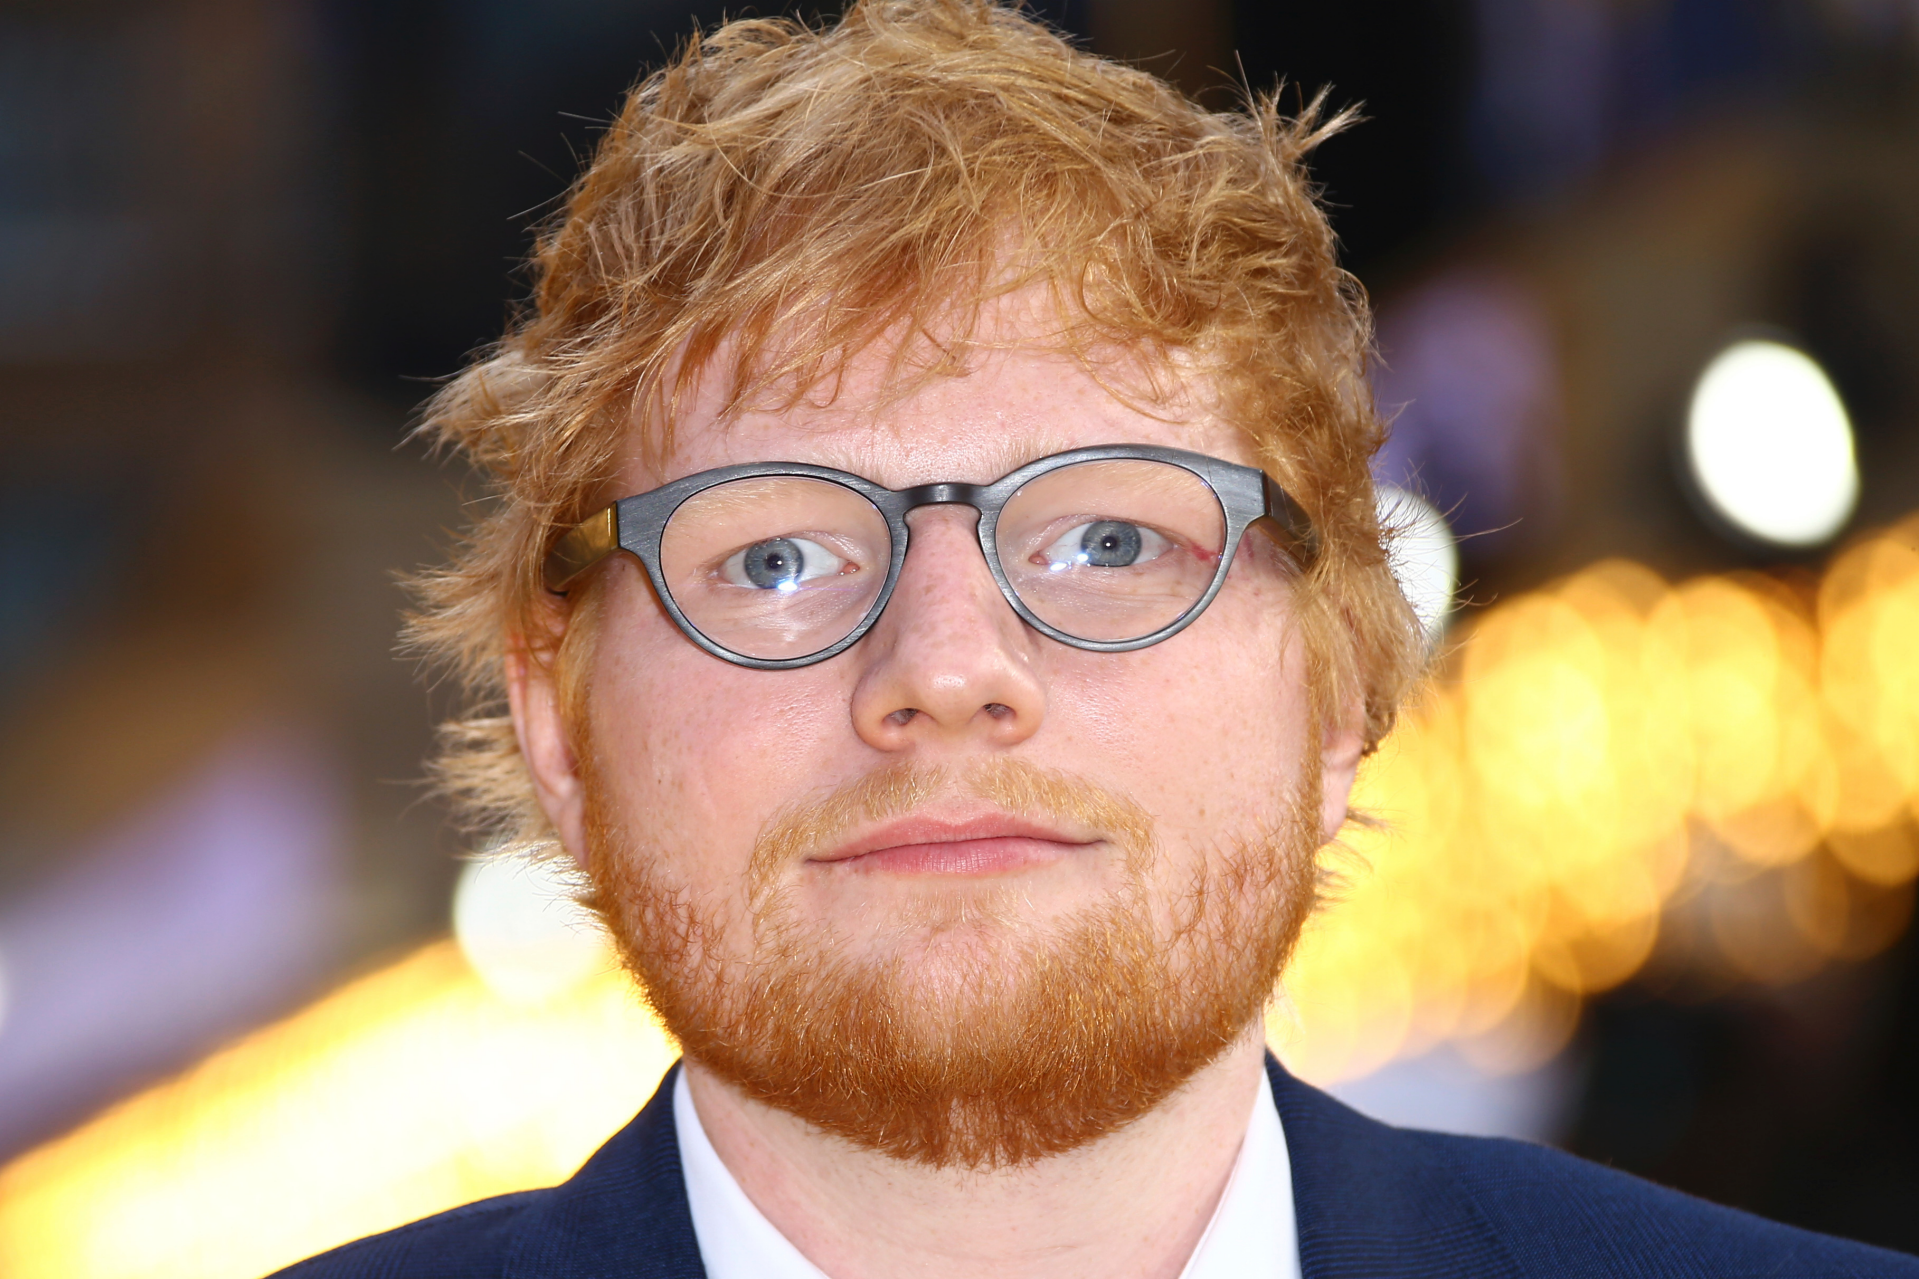 Ed Sheeran going on hiatus amid legal troubles, plagiarism claims